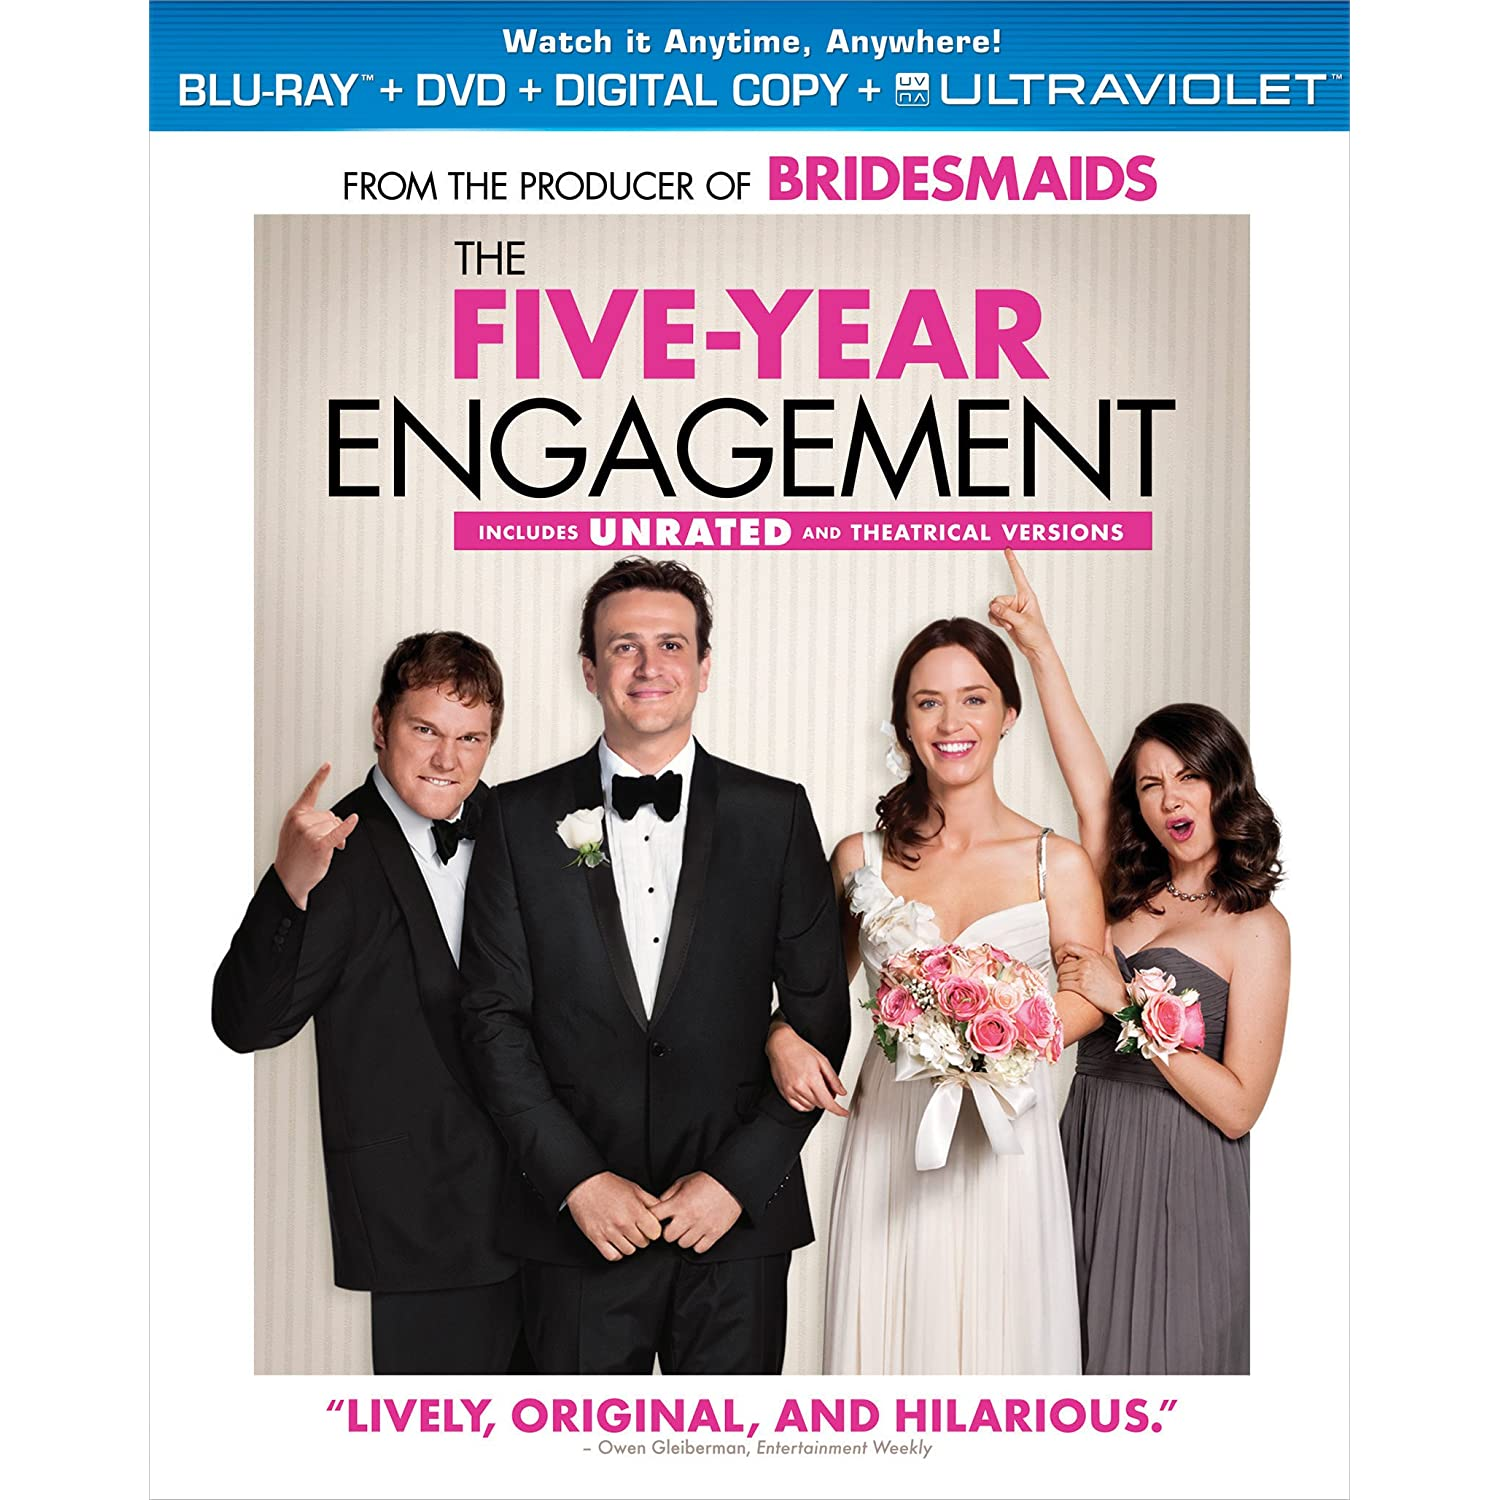 [MULTI] The Five-Year Engagement [MULTI] [BLURAY 1080p]